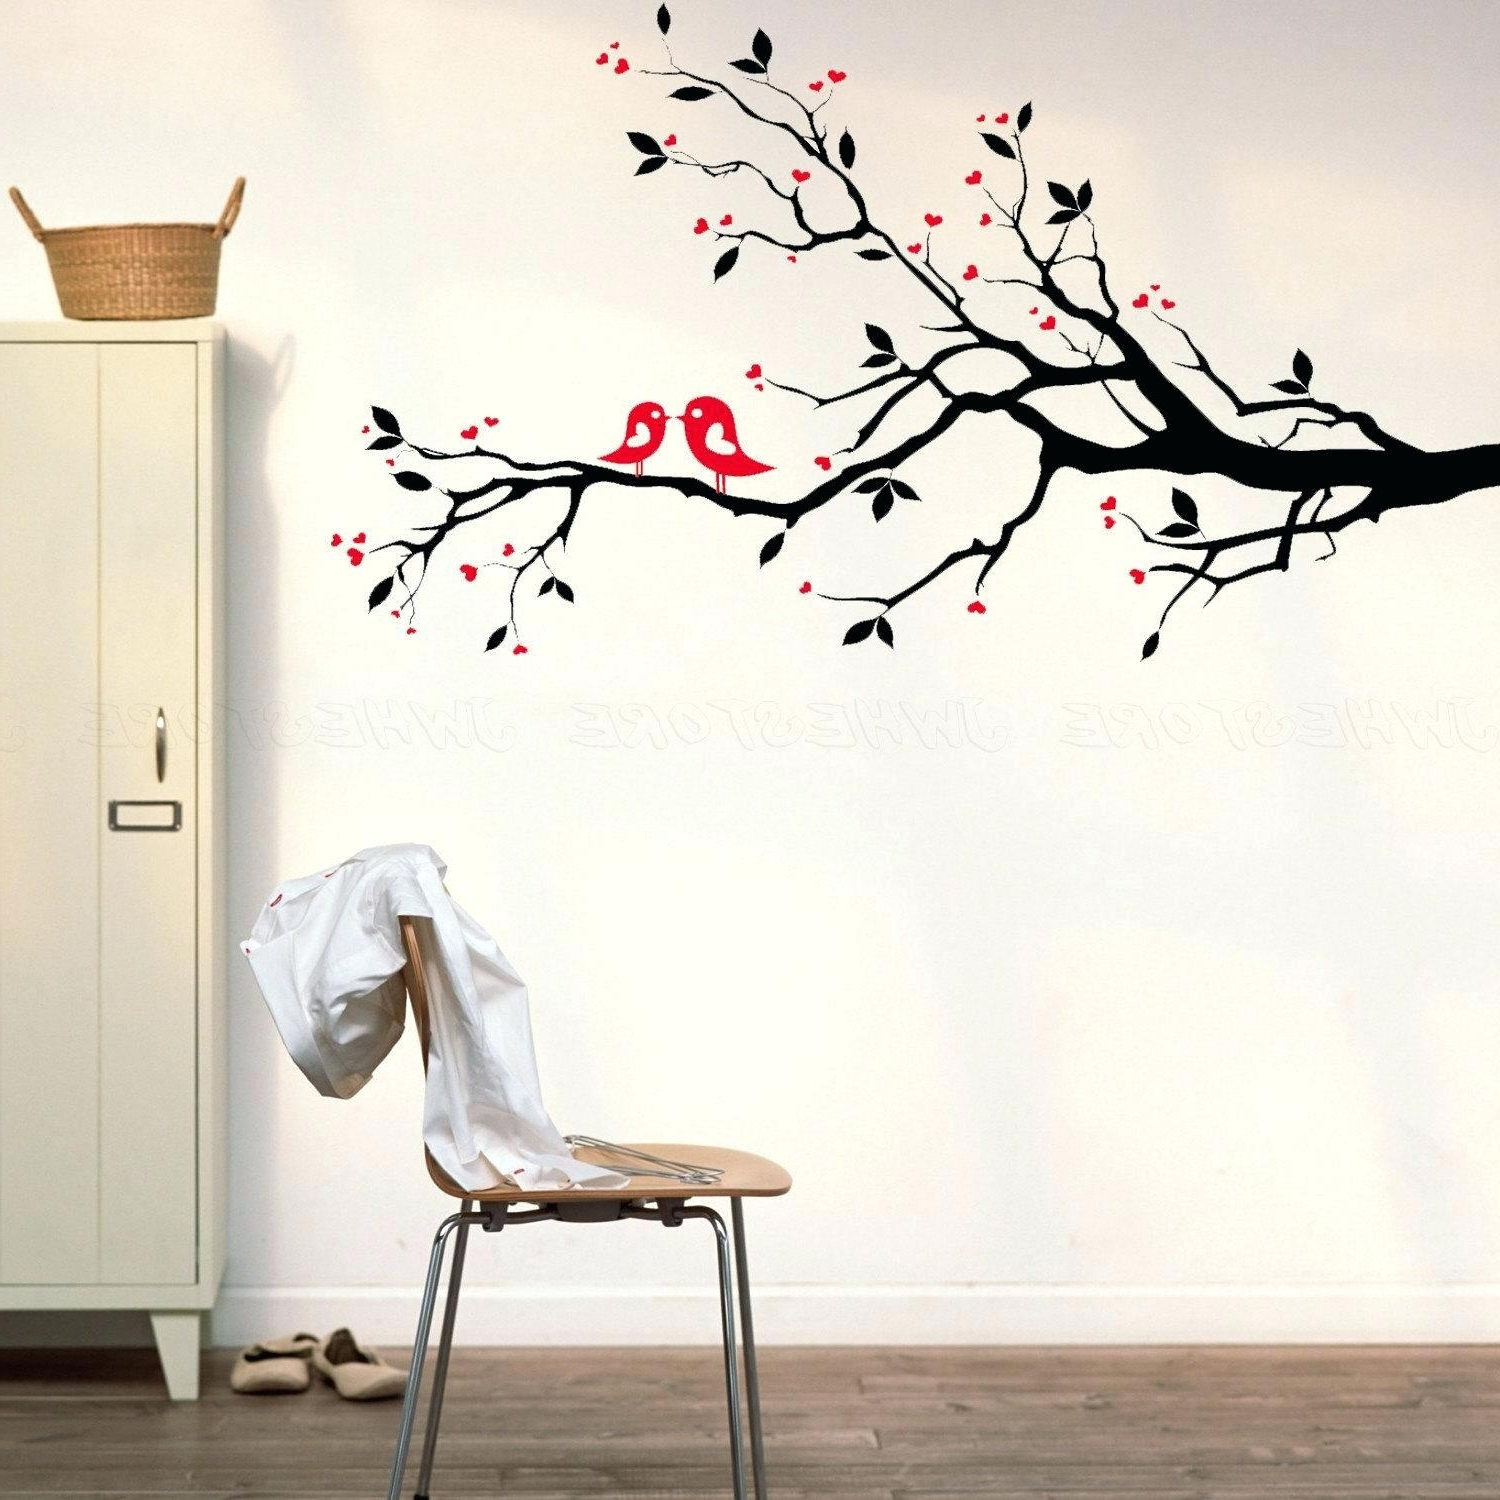 Trendy Cherry Blossom Branch Wall Decal Latest Red Cherry Blossom Wall Pertaining To Red Cherry Blossom Wall Art (View 7 of 15)